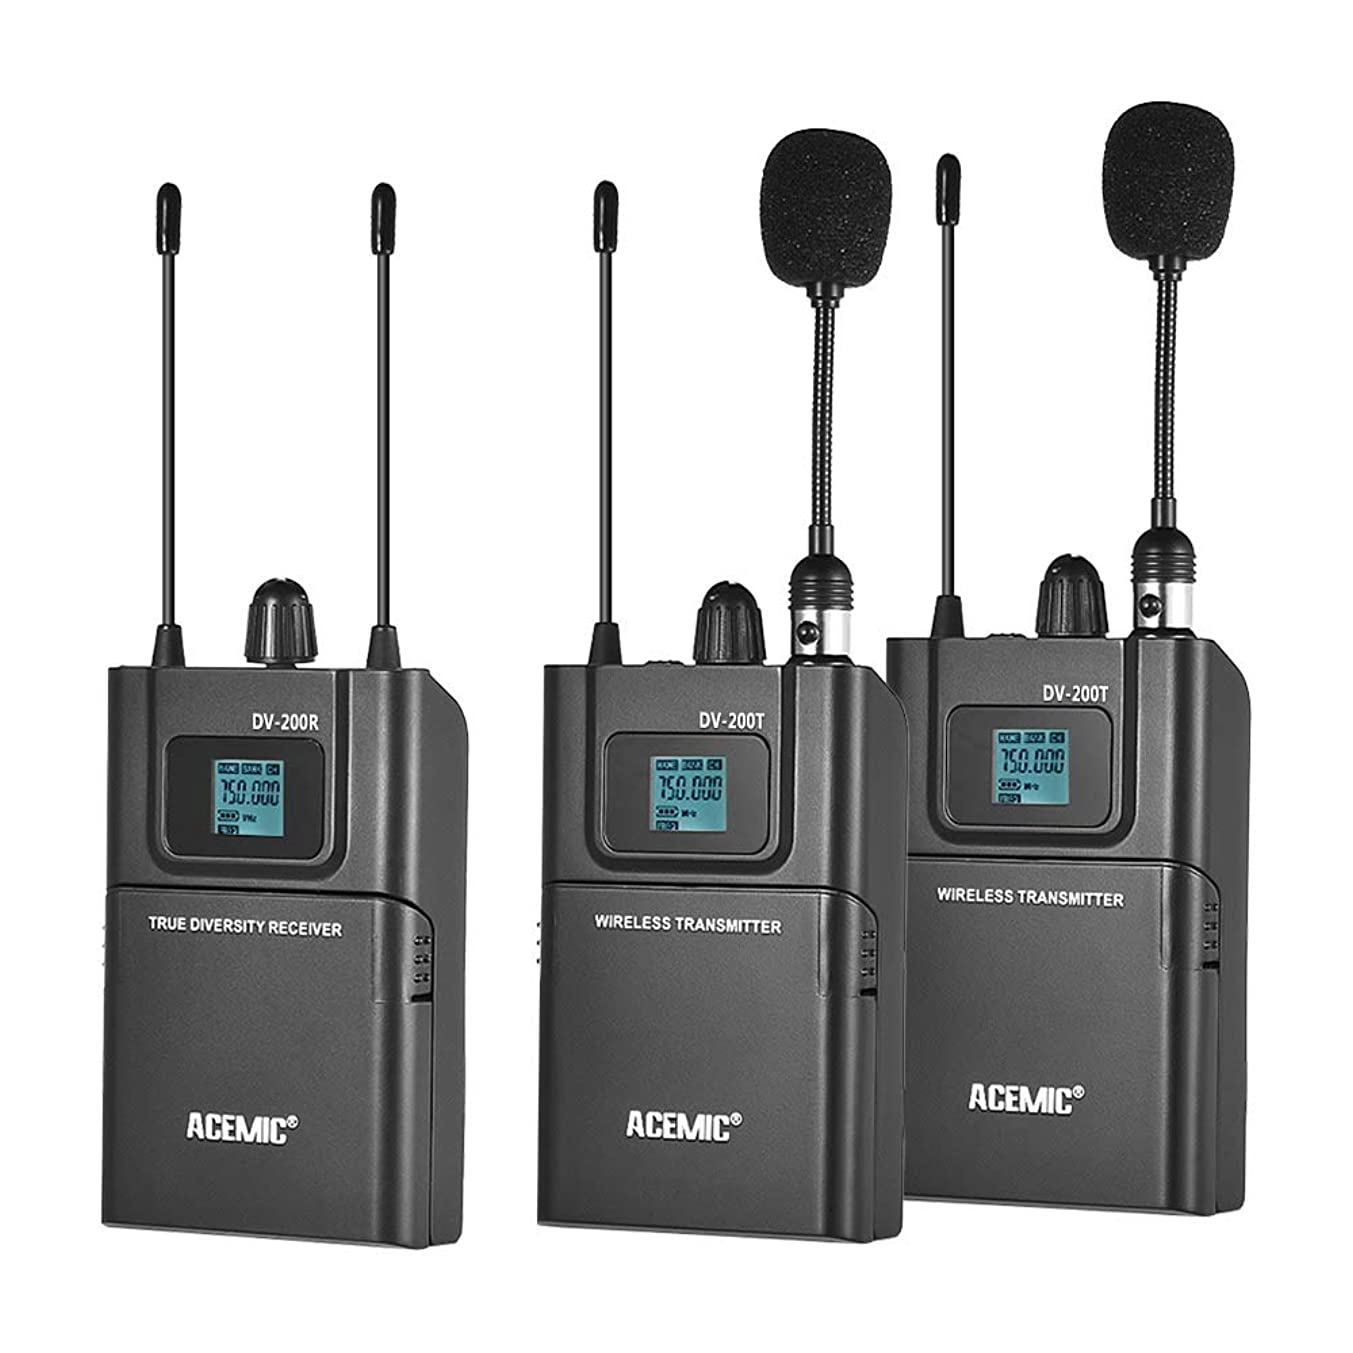 Leslaur ACEMIC DV200 Dual Channel UHF Wireless Microphone System LCD Display 50M Effective Range with 2 Transmitter & 1 Receiver for Canon Nikon Sony DSLR Camera Camcorder Interview Sound Recording